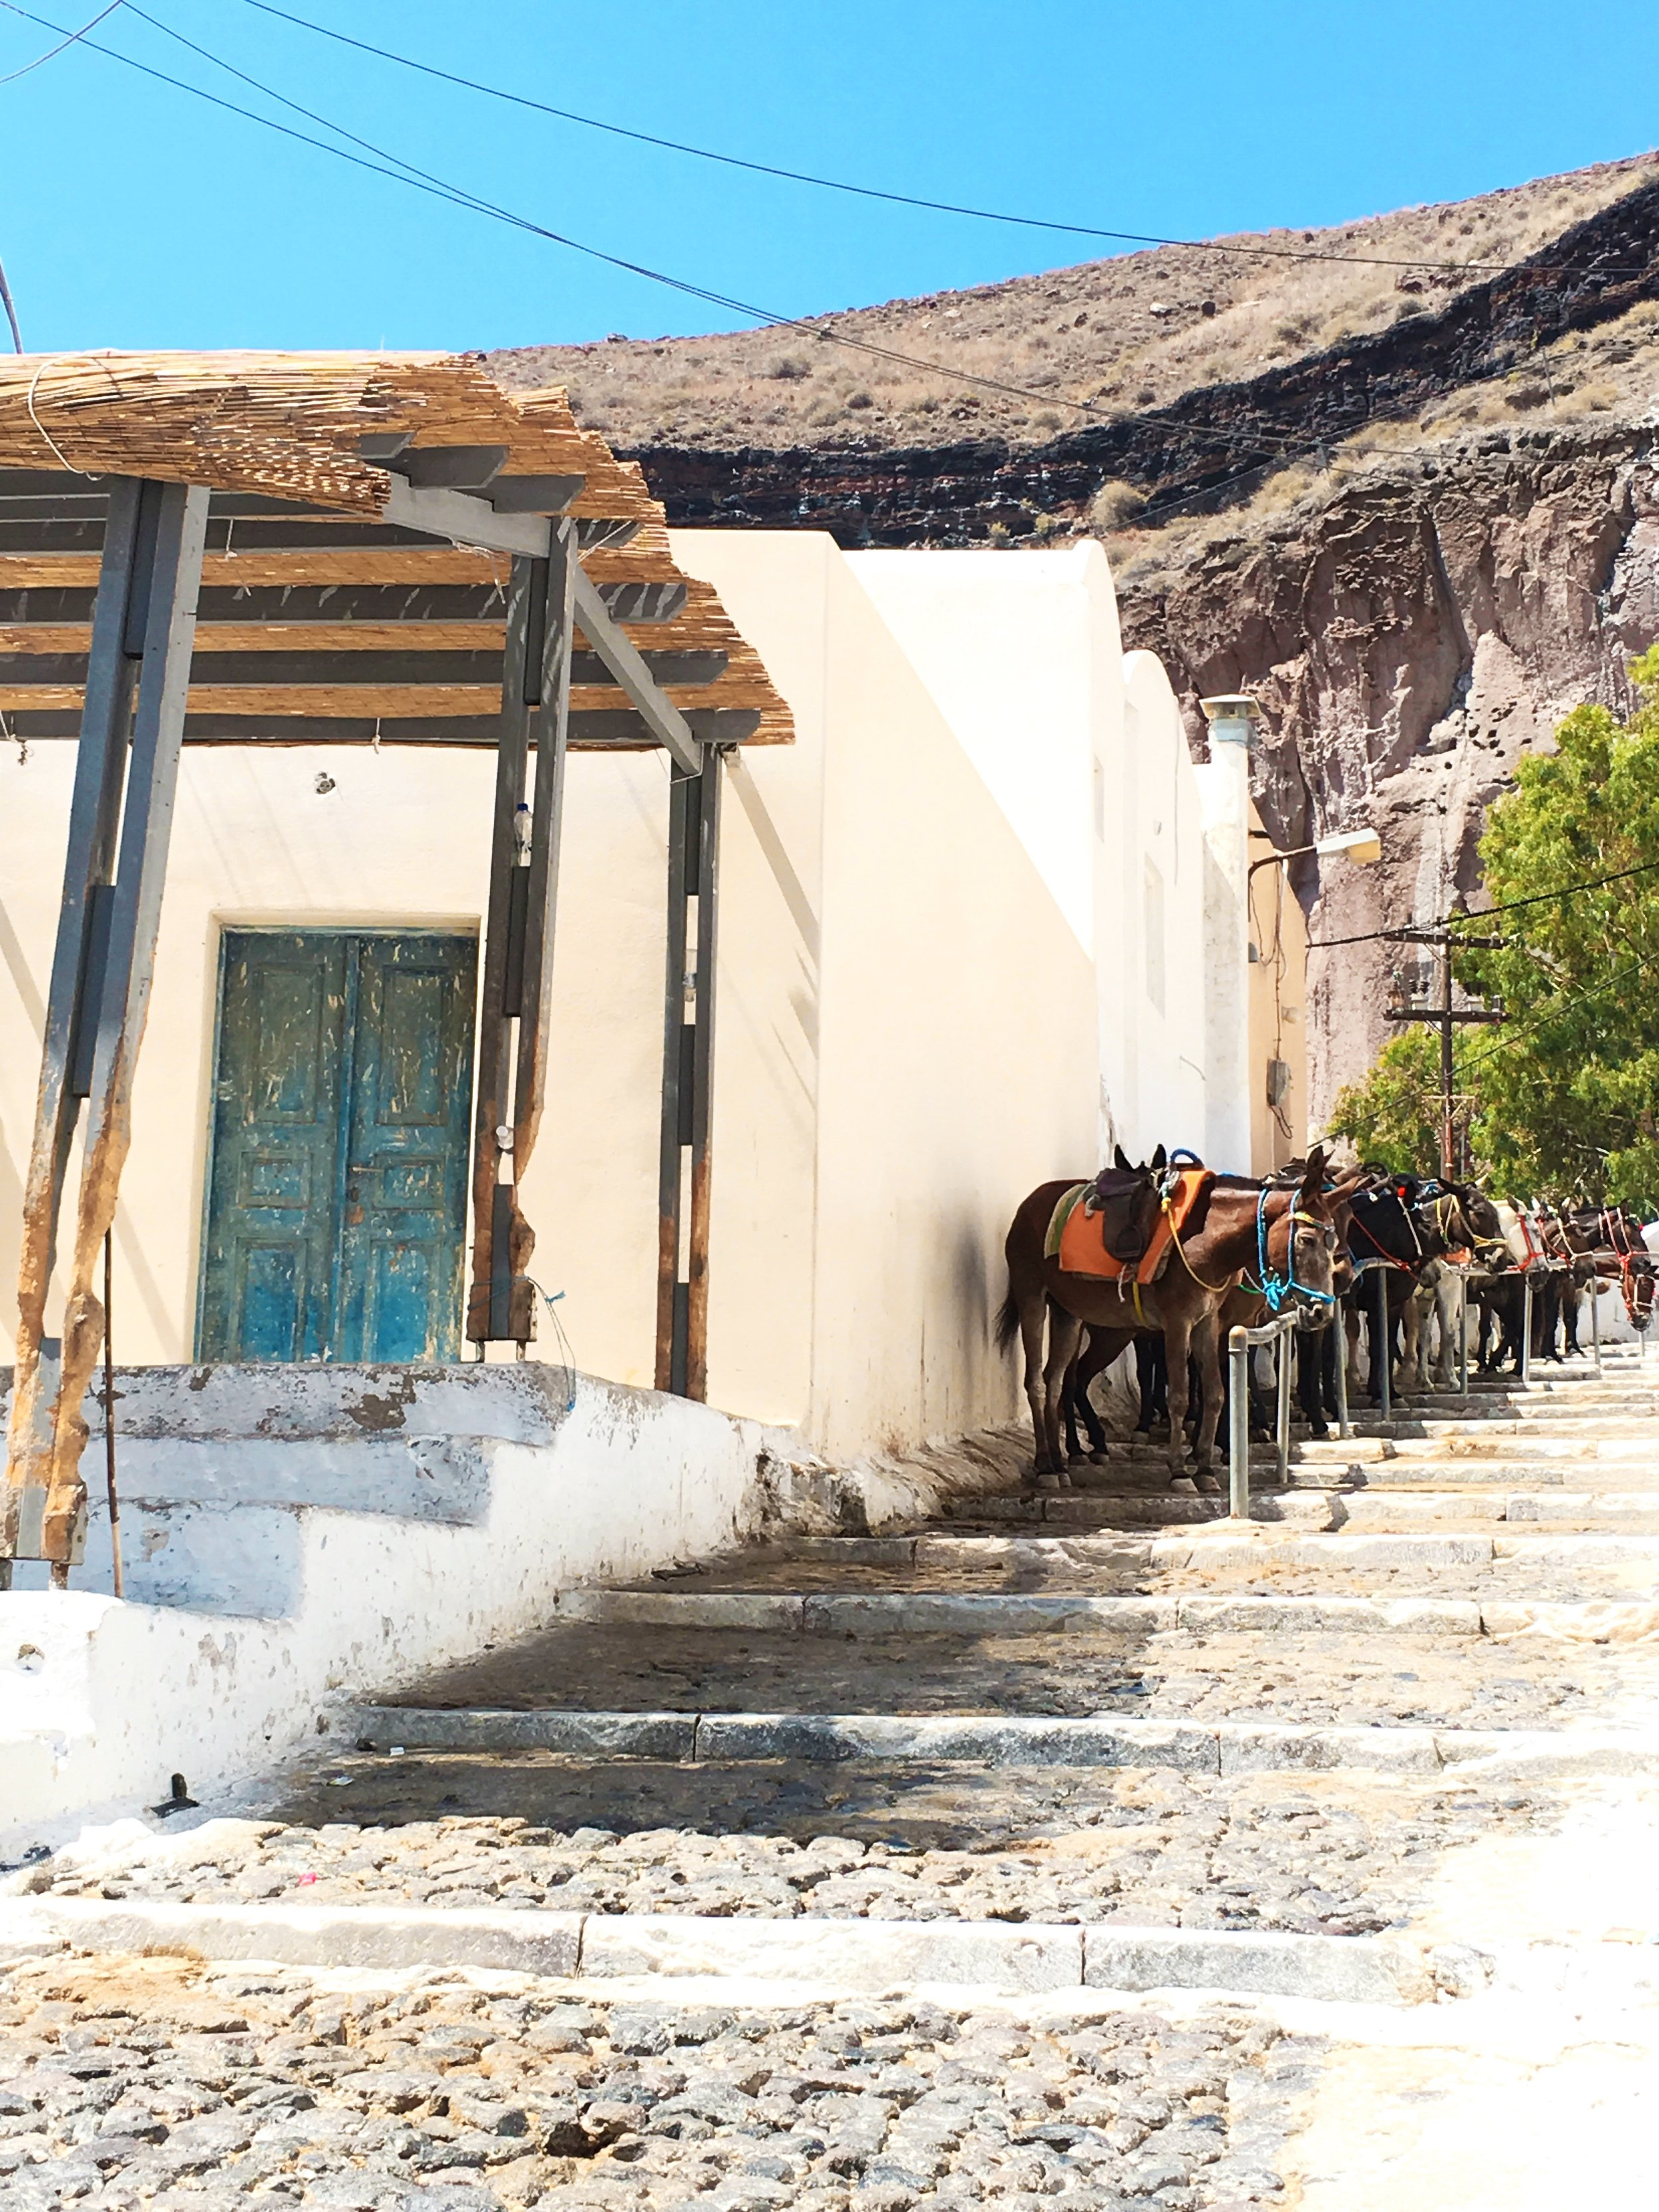 The donkeys waiting to take you up in Thira